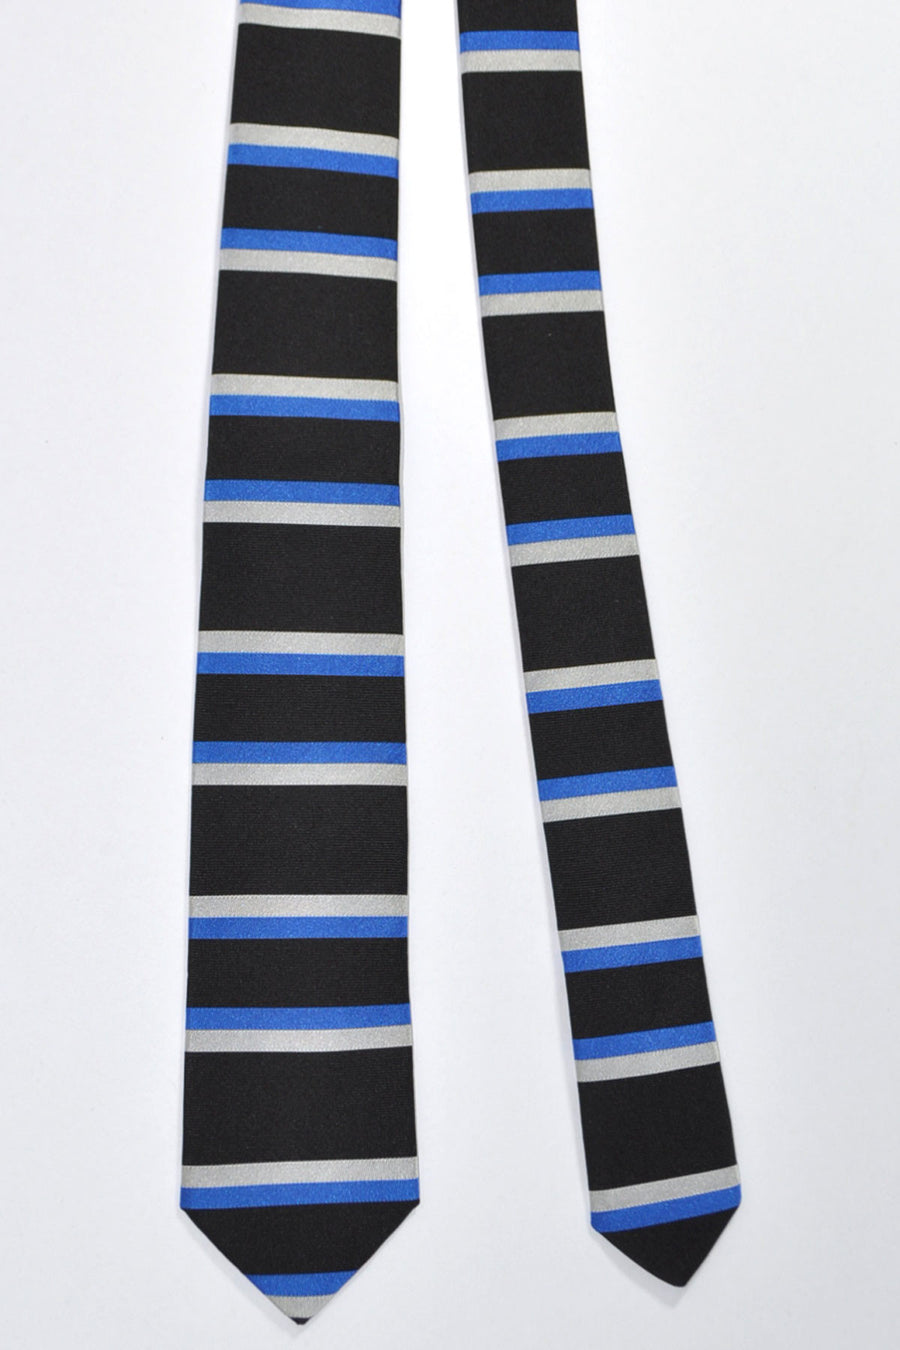 Givenchy Tie Black Royal Blue Silver Horizontal Stripes Narrow Cut